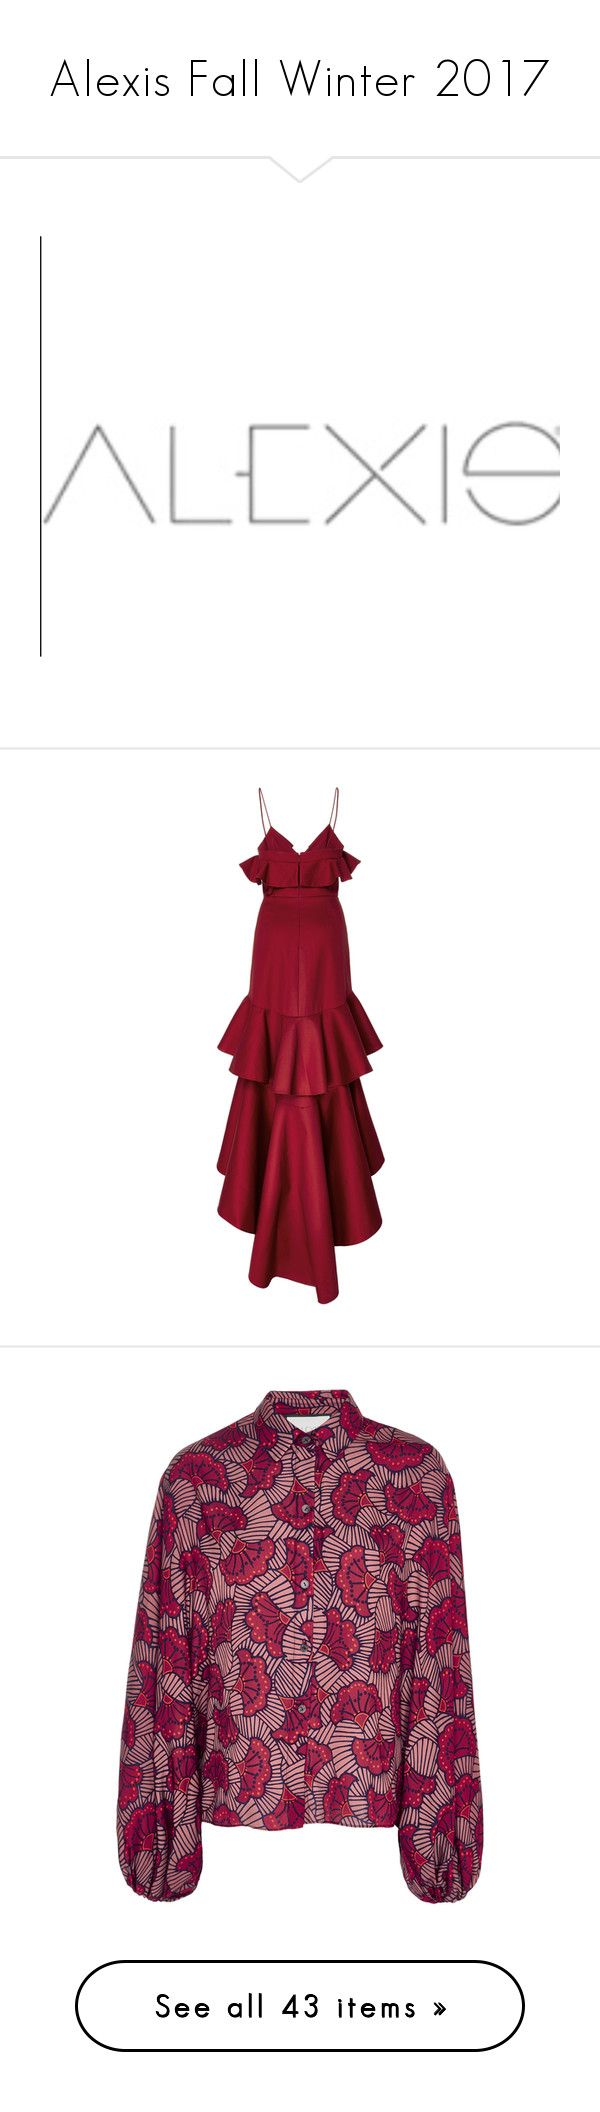 """Alexis Fall Winter 2017"" by enam ❤ liked on Polyvore featuring dresses, tiered ruffle dress, ruffle cocktail dress, red cocktail dress, red high low dress, high low dresses, tops, print, alexis top and purple top"